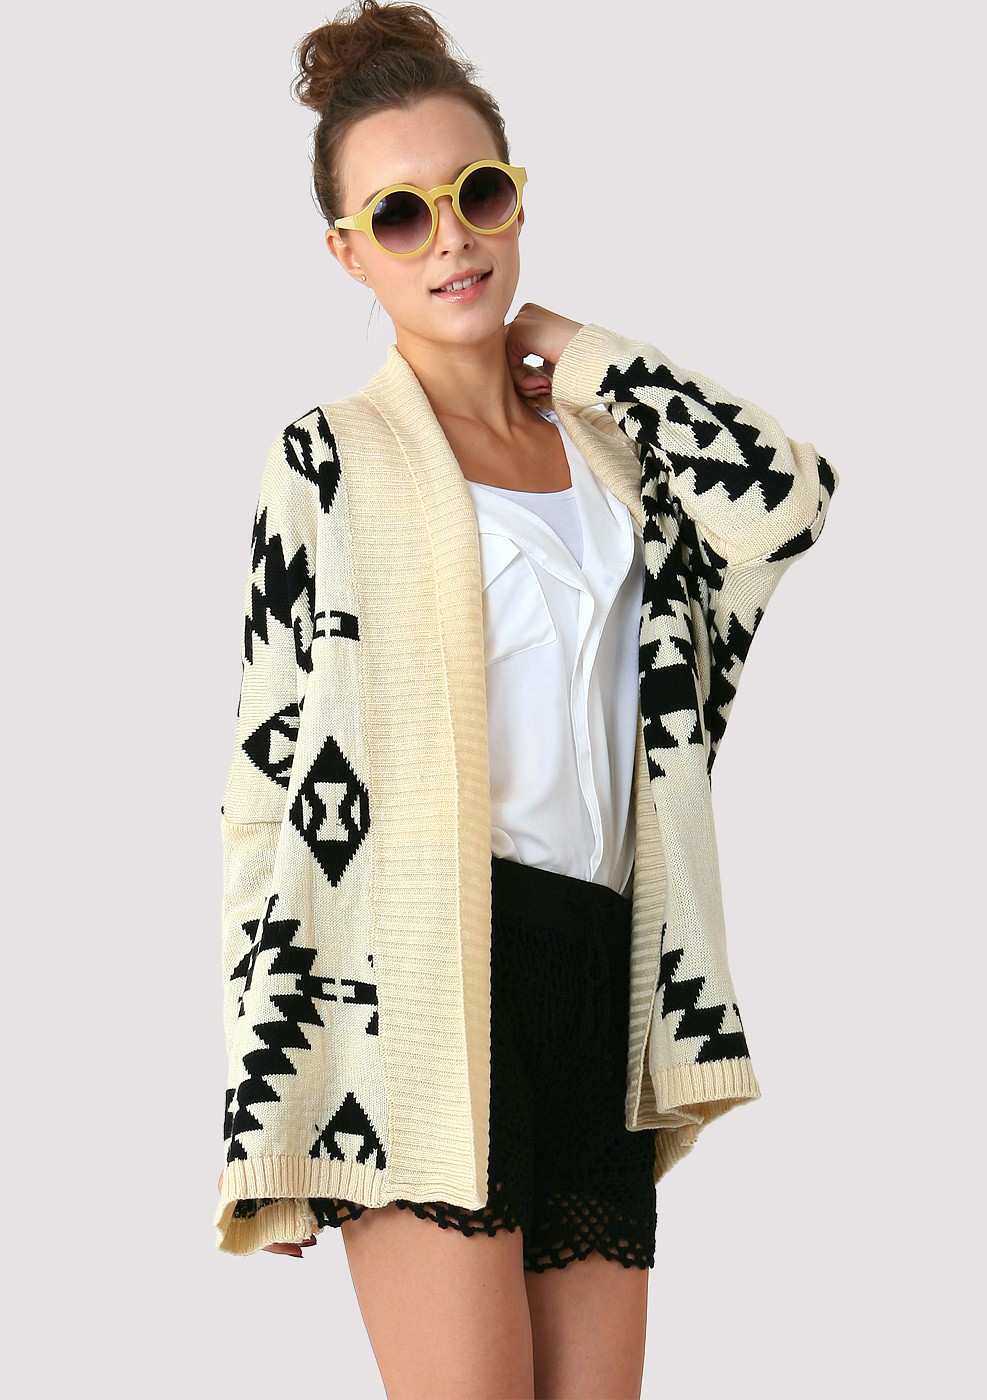 Open front sweaters in black and white triangular designs illustrated on top make warm layering pieces. Wrap yourself in earthen colors in luxuriously fringed knitted pieces. Or, try a multicolored asymmetrical sweater and indulge yourself in a frenzy of mixed lines and alternating repeated patterns in vibrant shades of red, blue, orange.